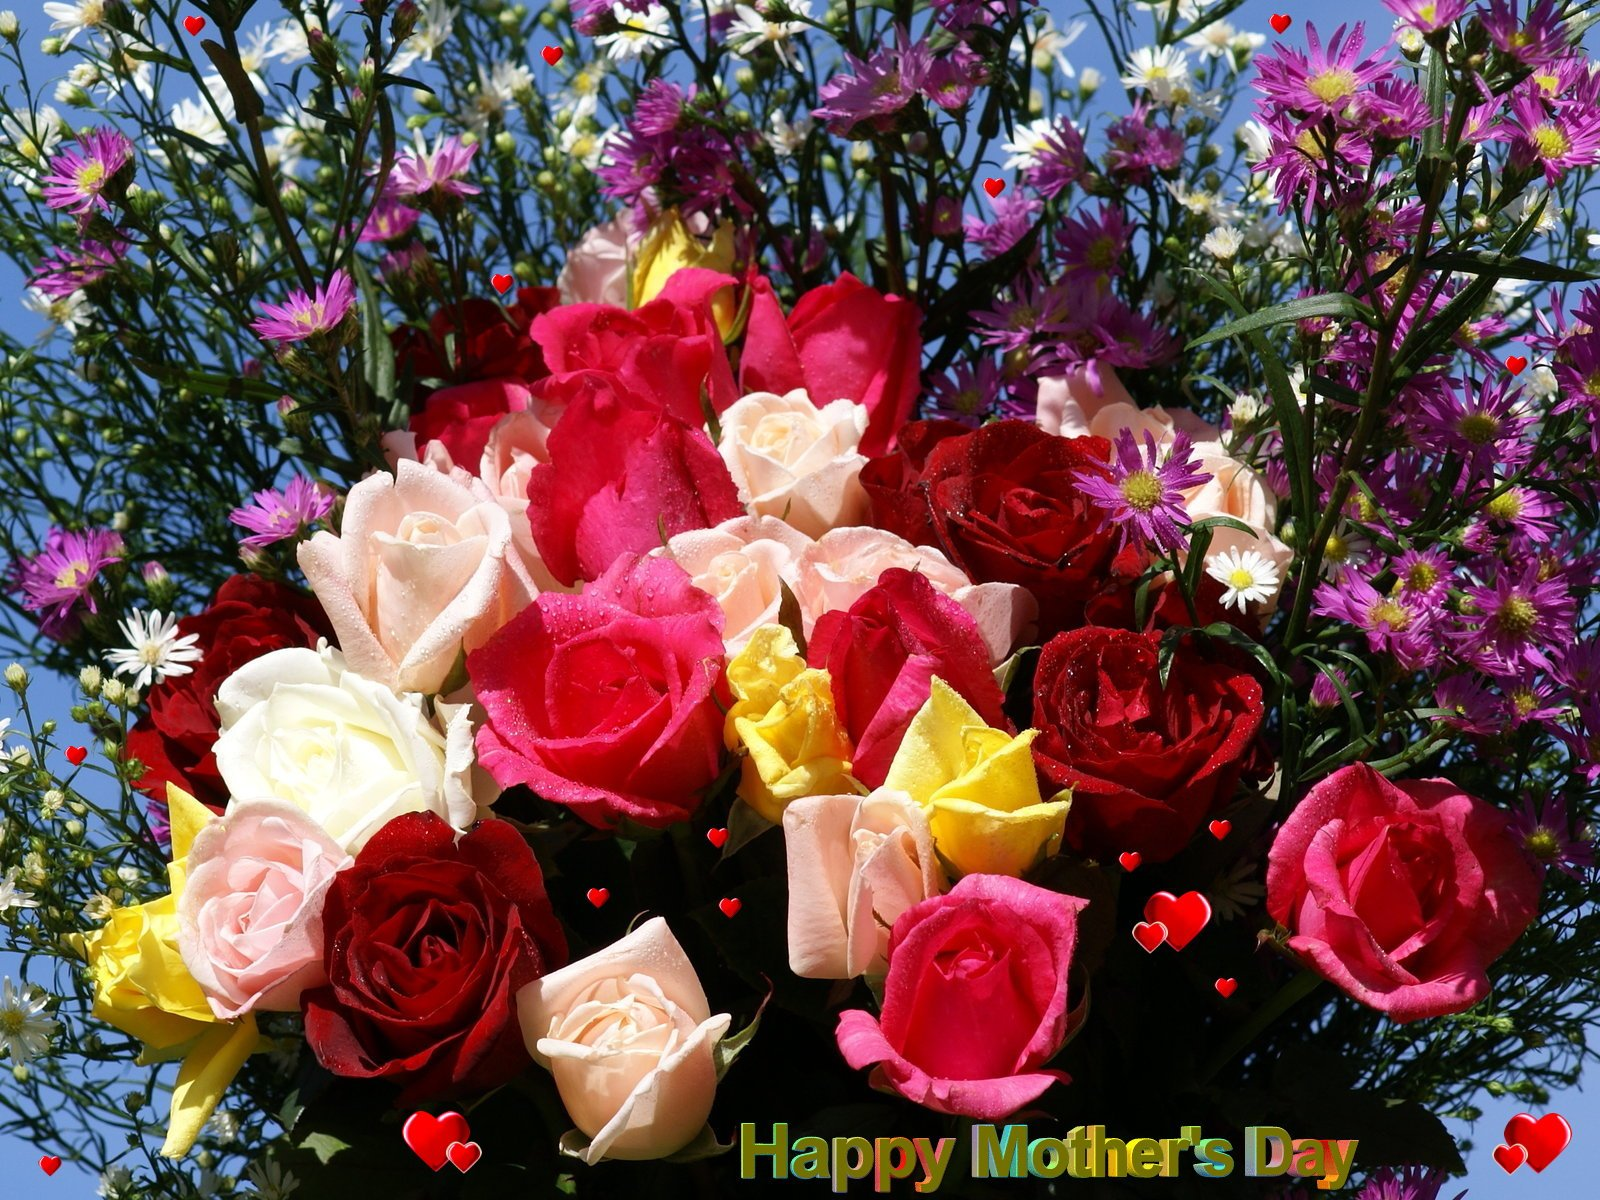 Mothers Day wallpaper beautiful flowers 1600x1200